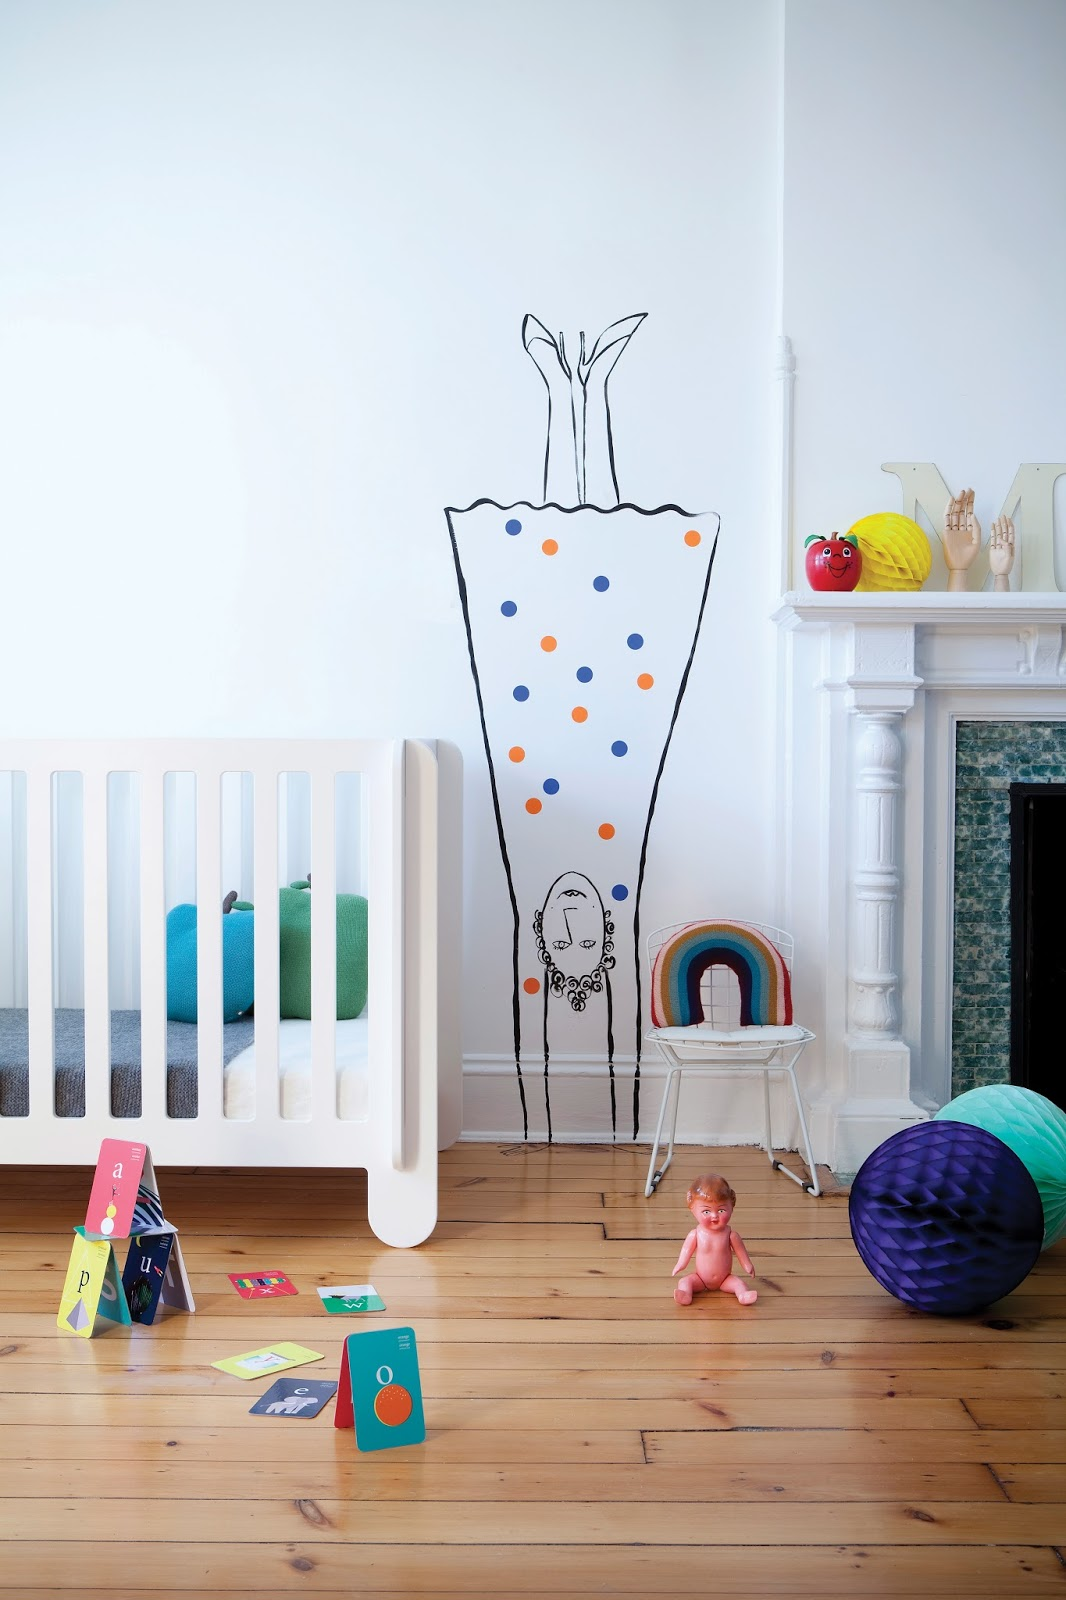 Walls For Kids My Scandinavian Home A Fun And Relaxed Children 39s Room By